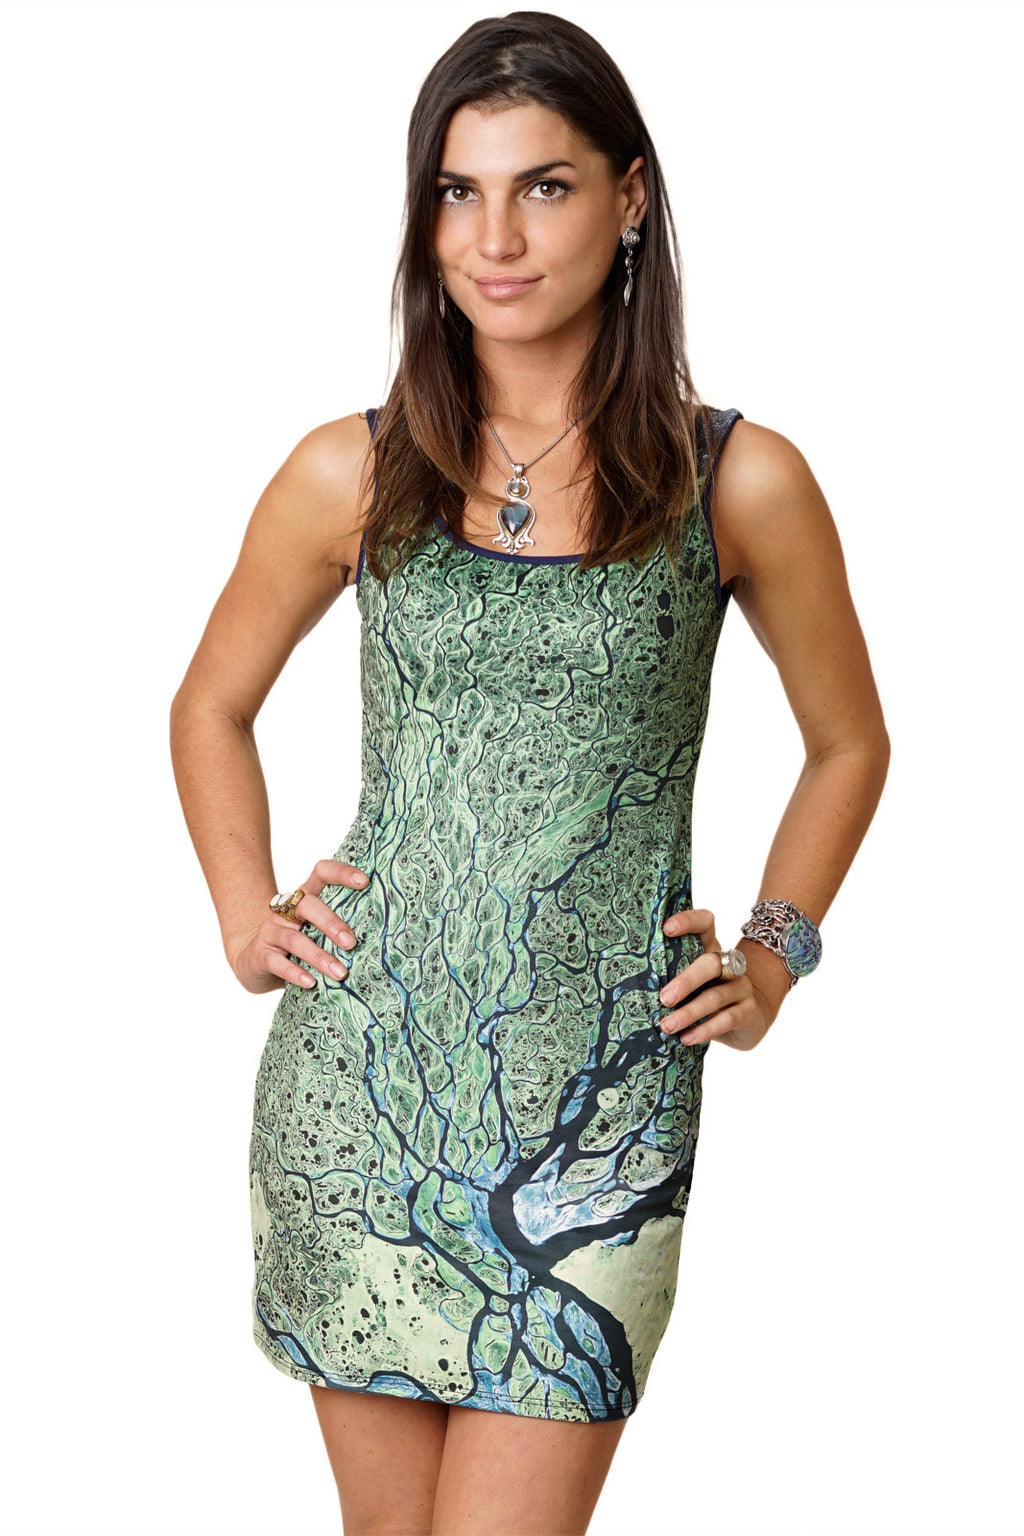 Nature Dress-High Definition Graphic Printed Dress-Earth Image Dress-Lena Delta